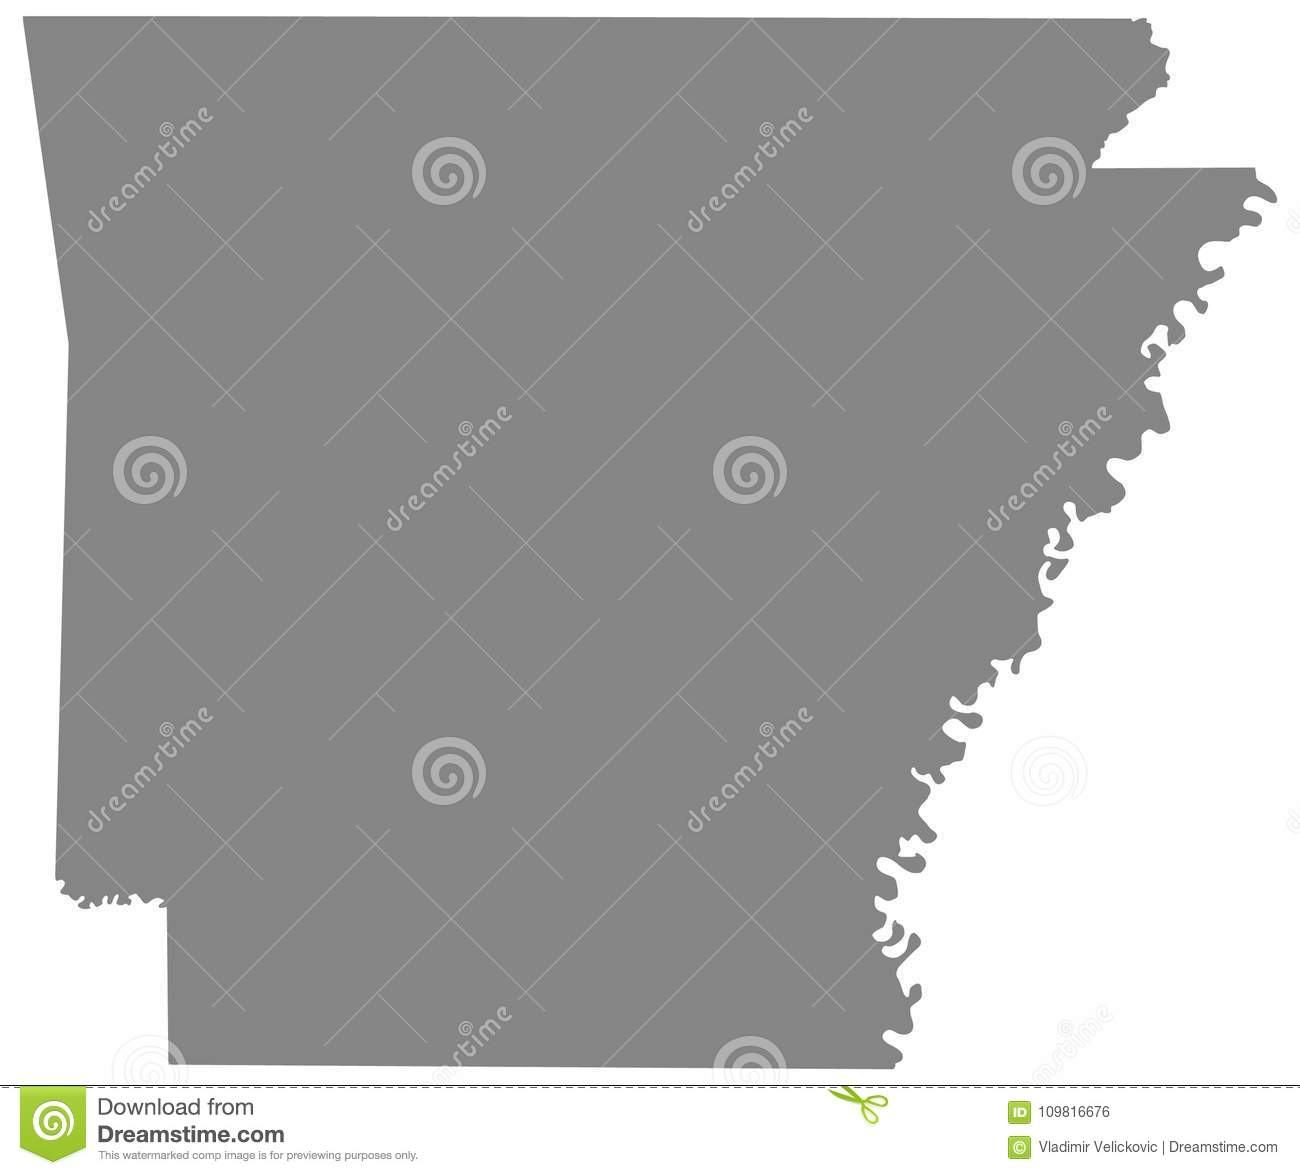 Arkansas Map State In The Southeastern Region Of The United States